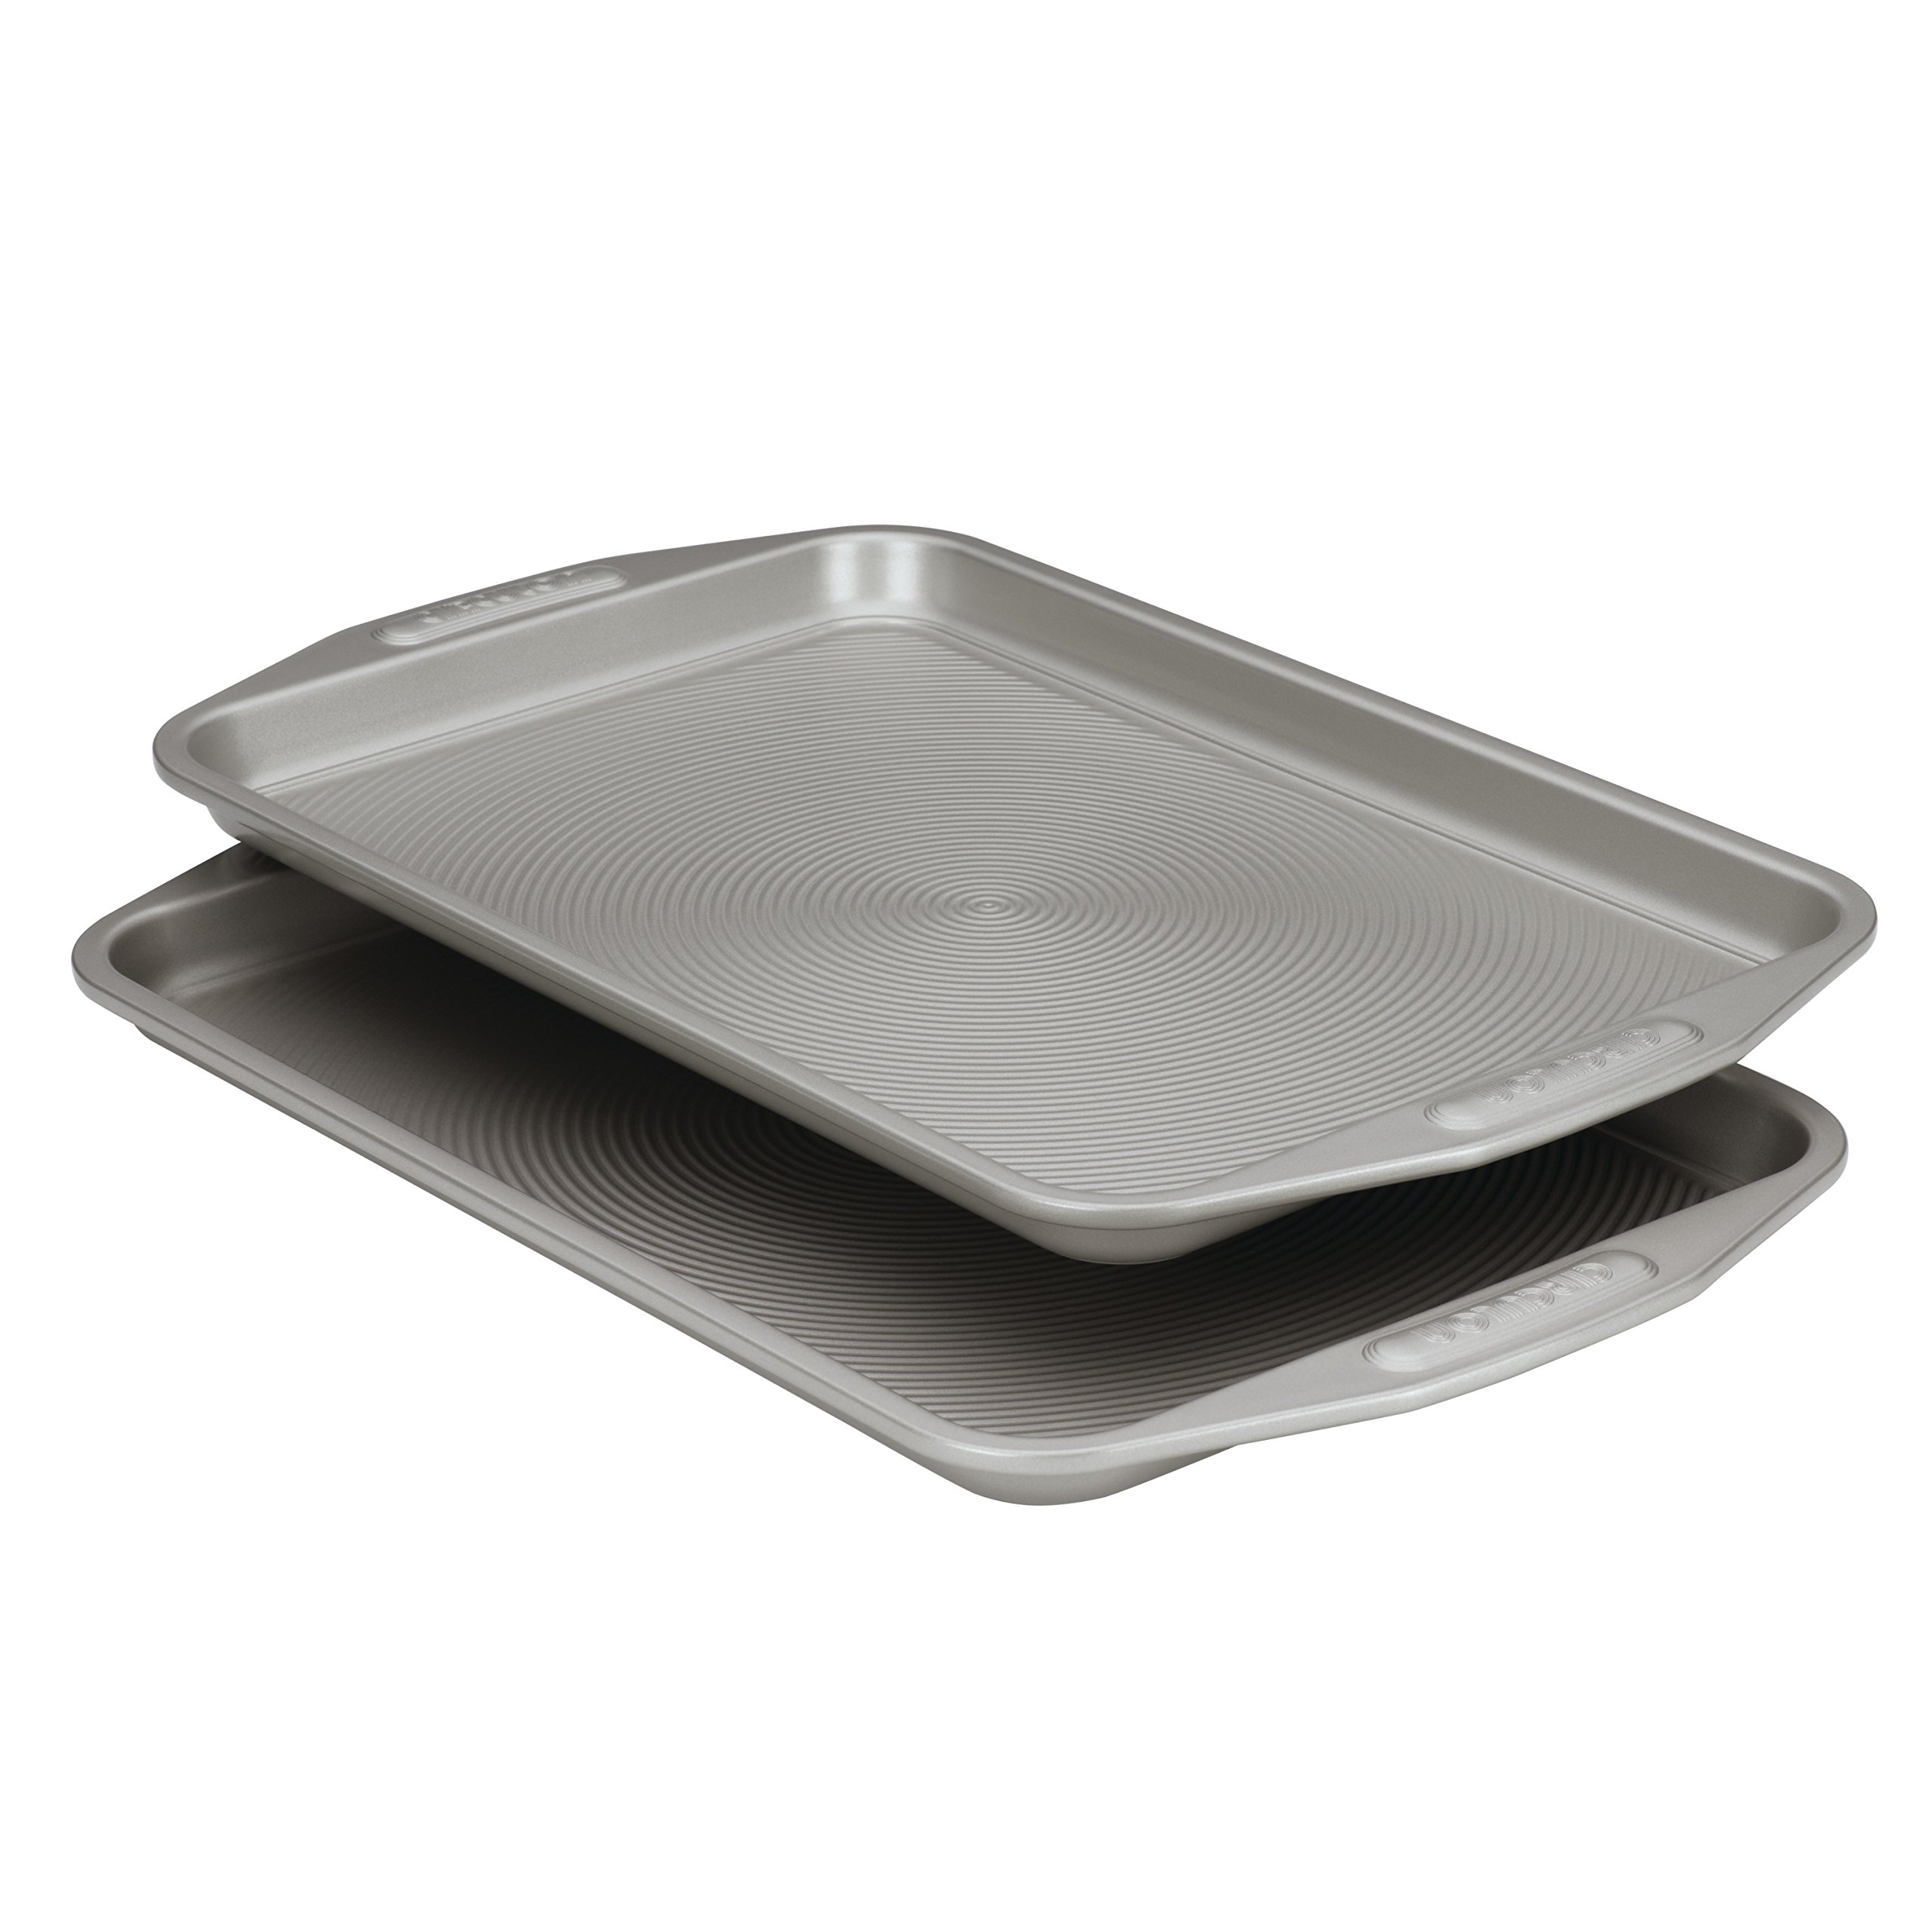 Circulon Nonstick Bakeware 10-Inch-by-15-Inch Cookie Baking Pan, 2-Piece Set by Circulon